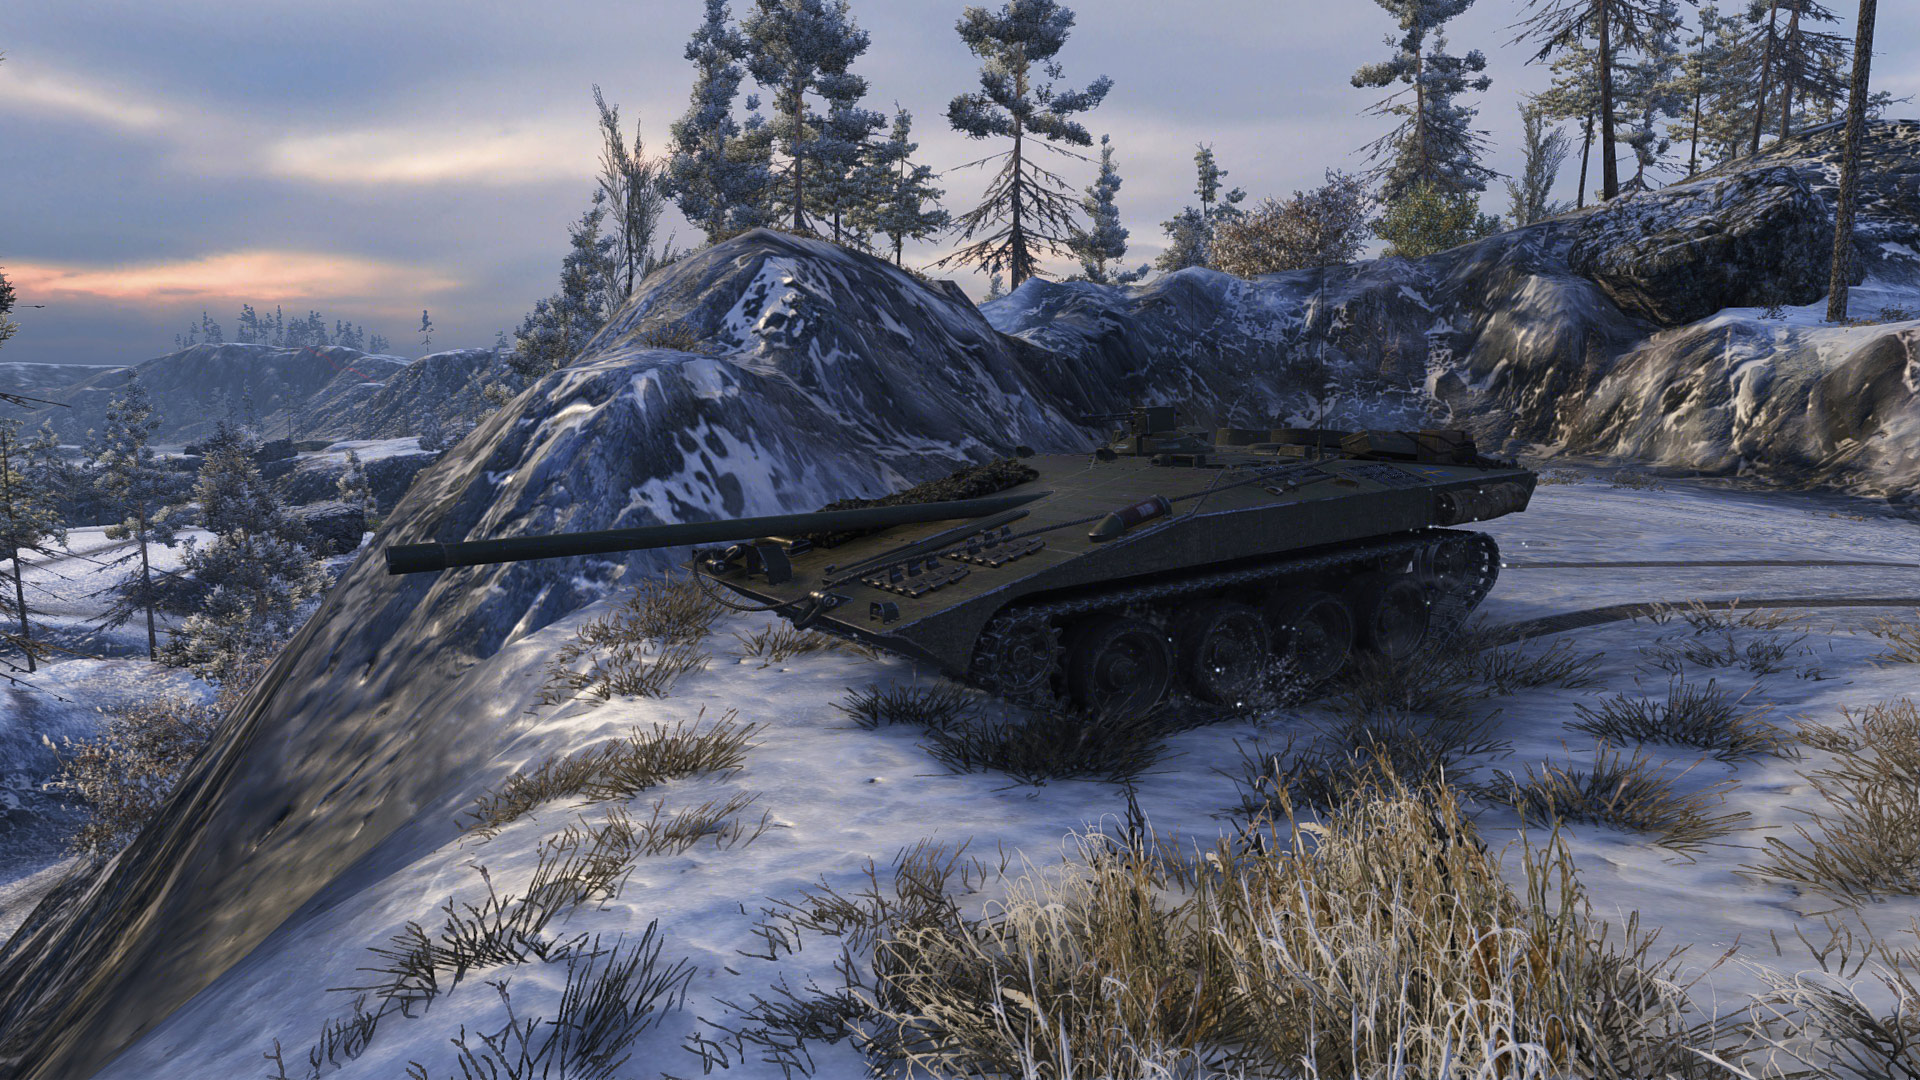 The Strv S1 is Now Available in the World of Tanks Premium